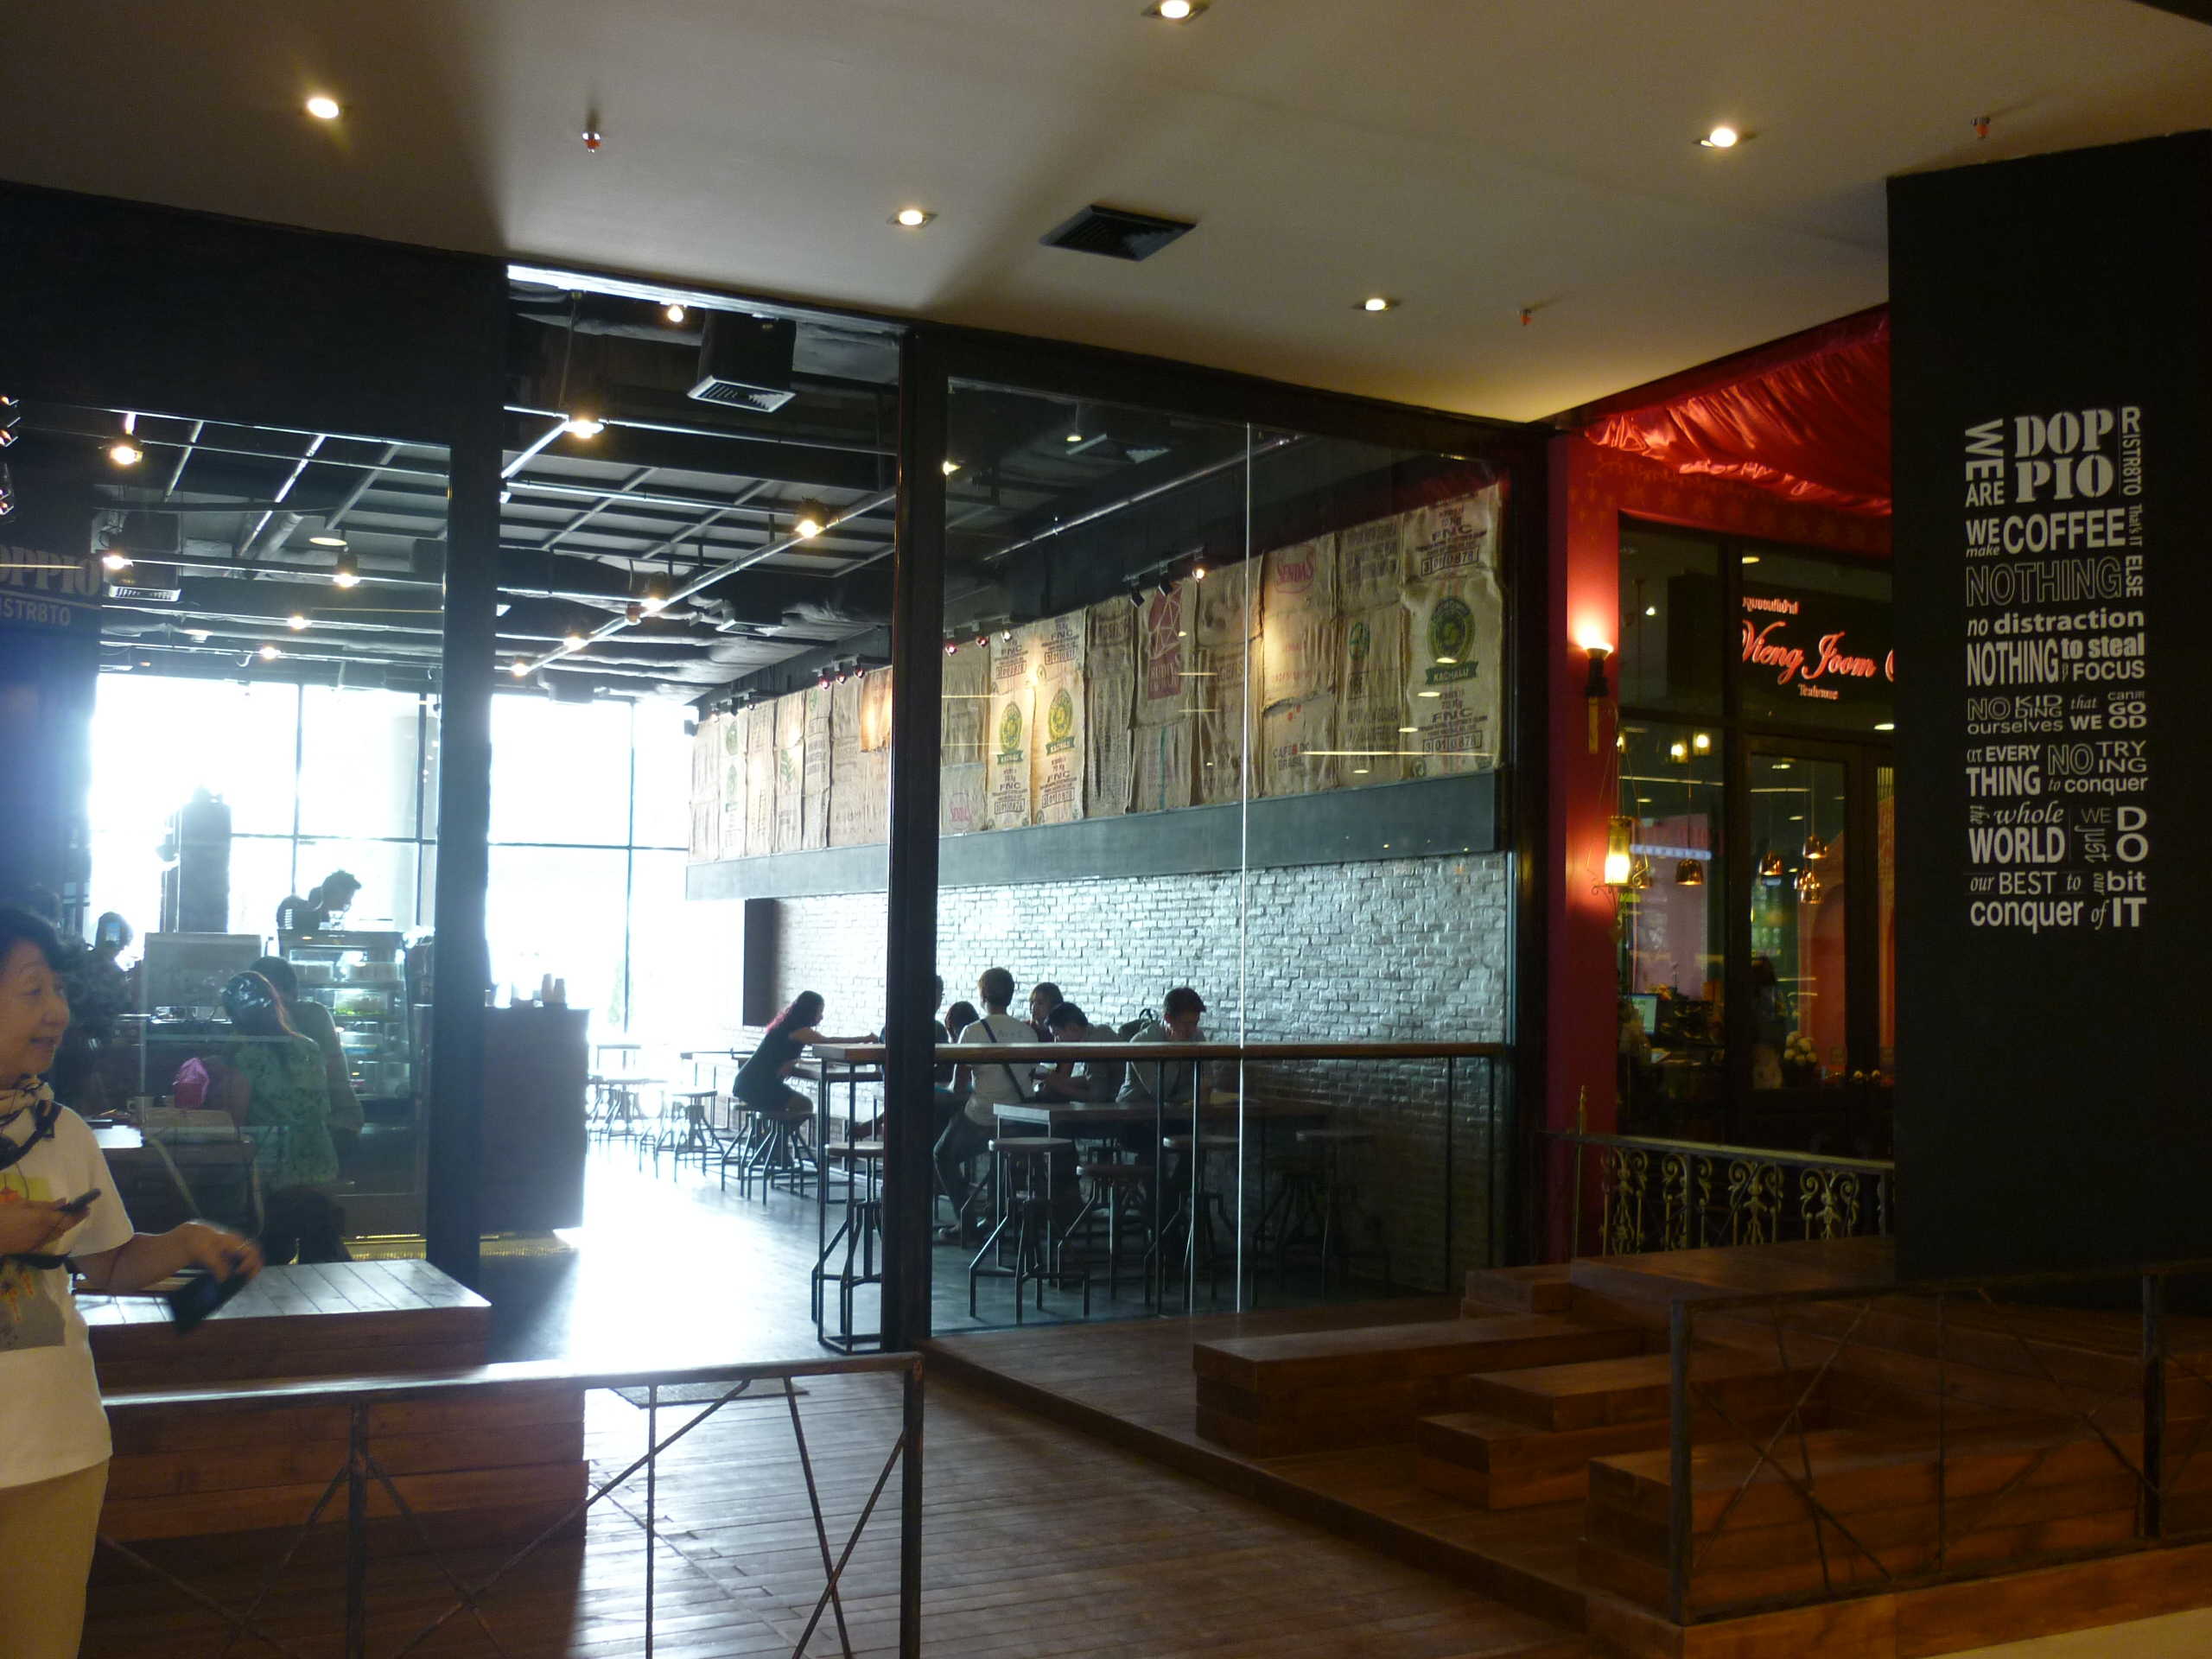 The Terrace Cafe and Restaurant